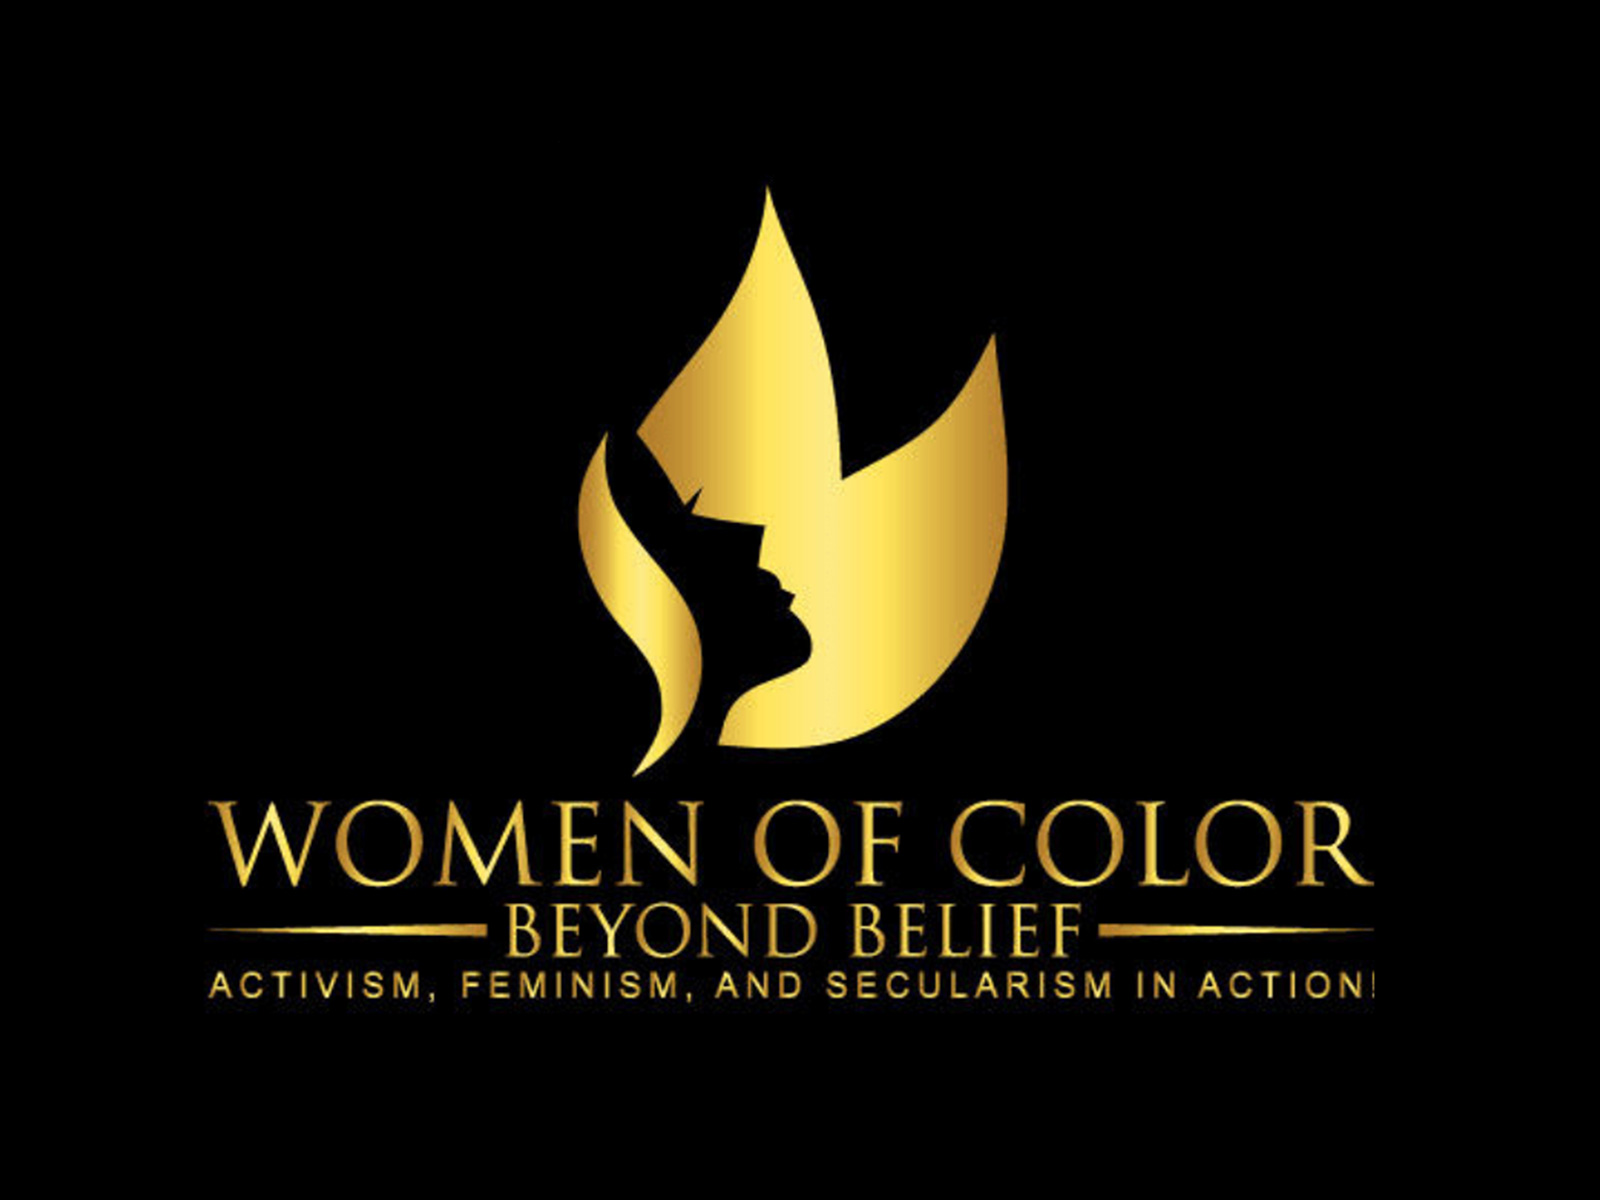 American Atheists at Women of Color Beyond Belief   American Atheists